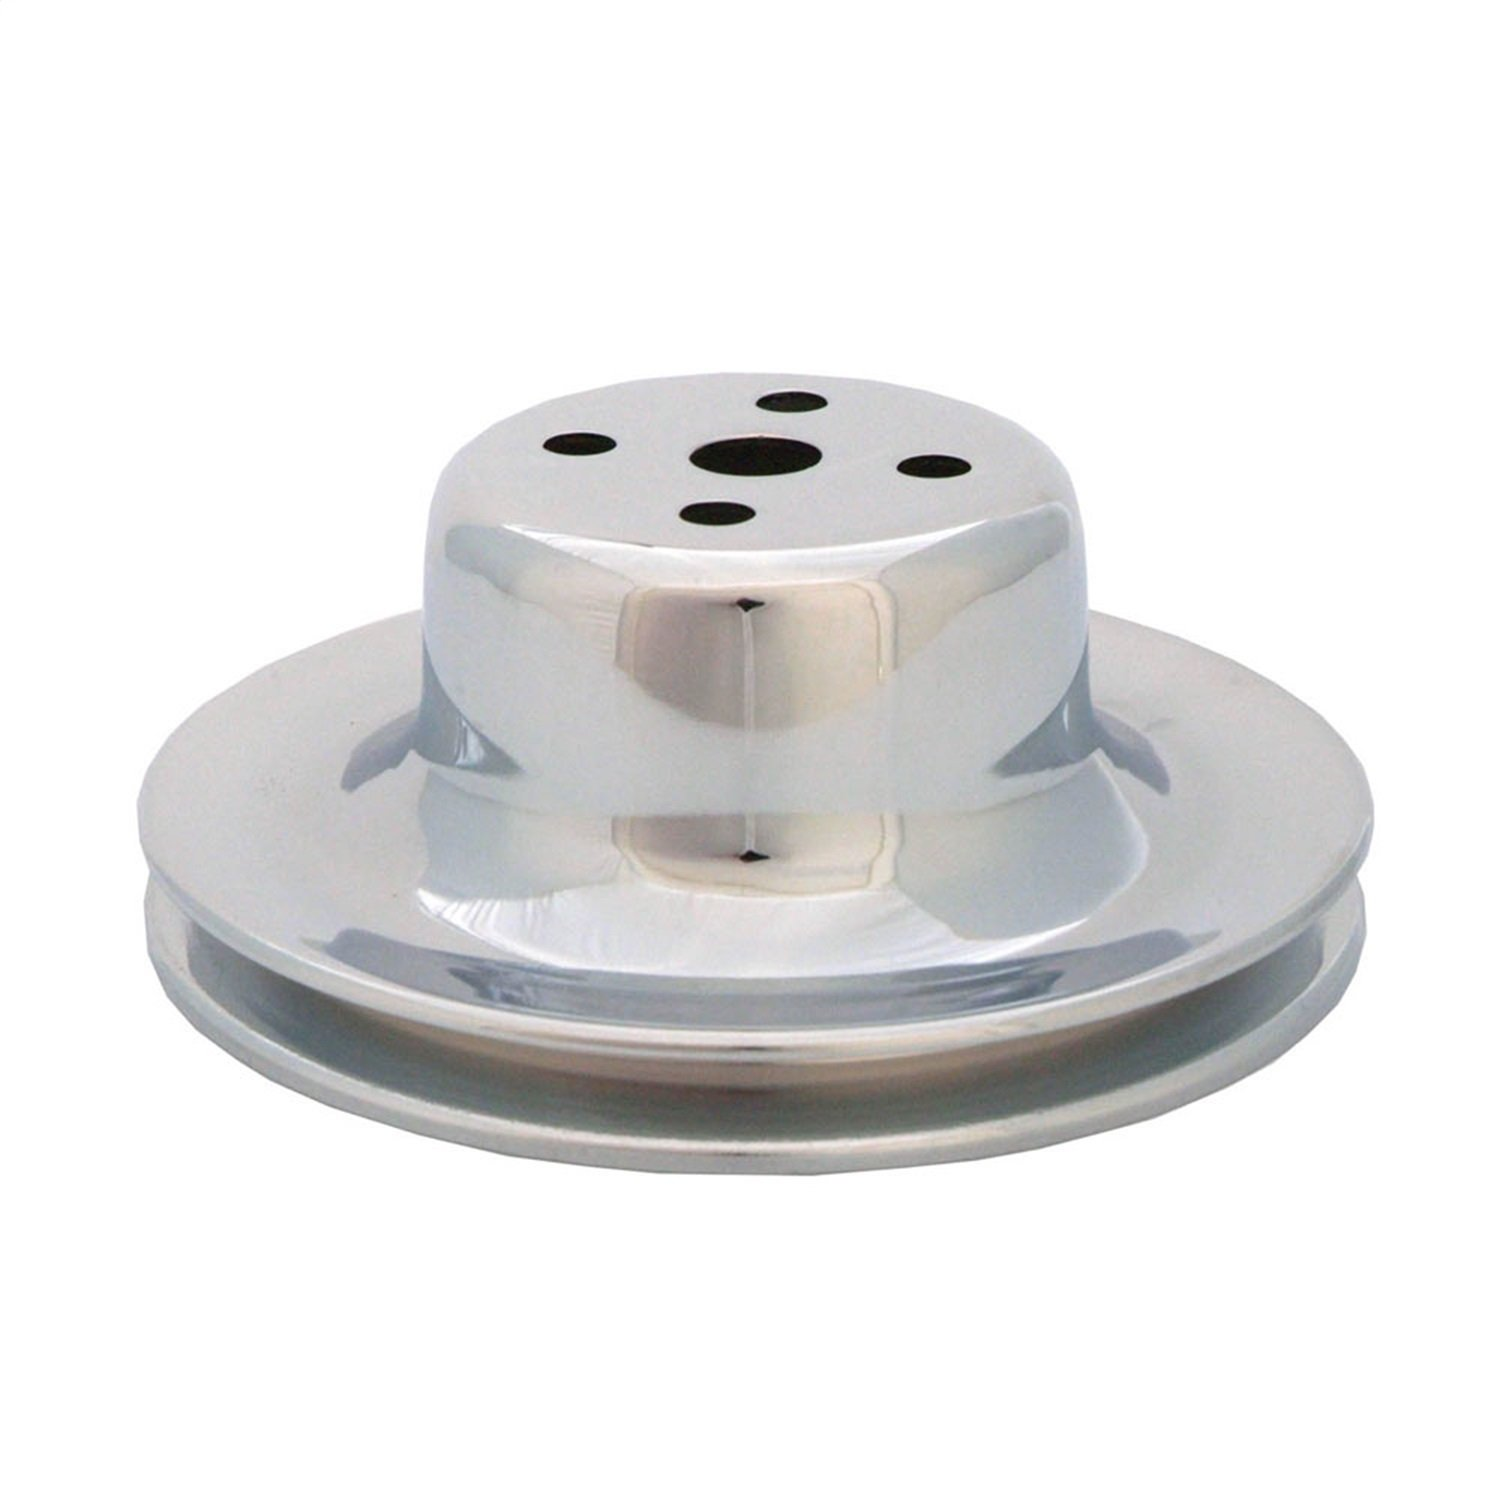 Spectre Performance 4491 Chrome Single Belt Water Pump Pulley for Ford 289 by Spectre Performance